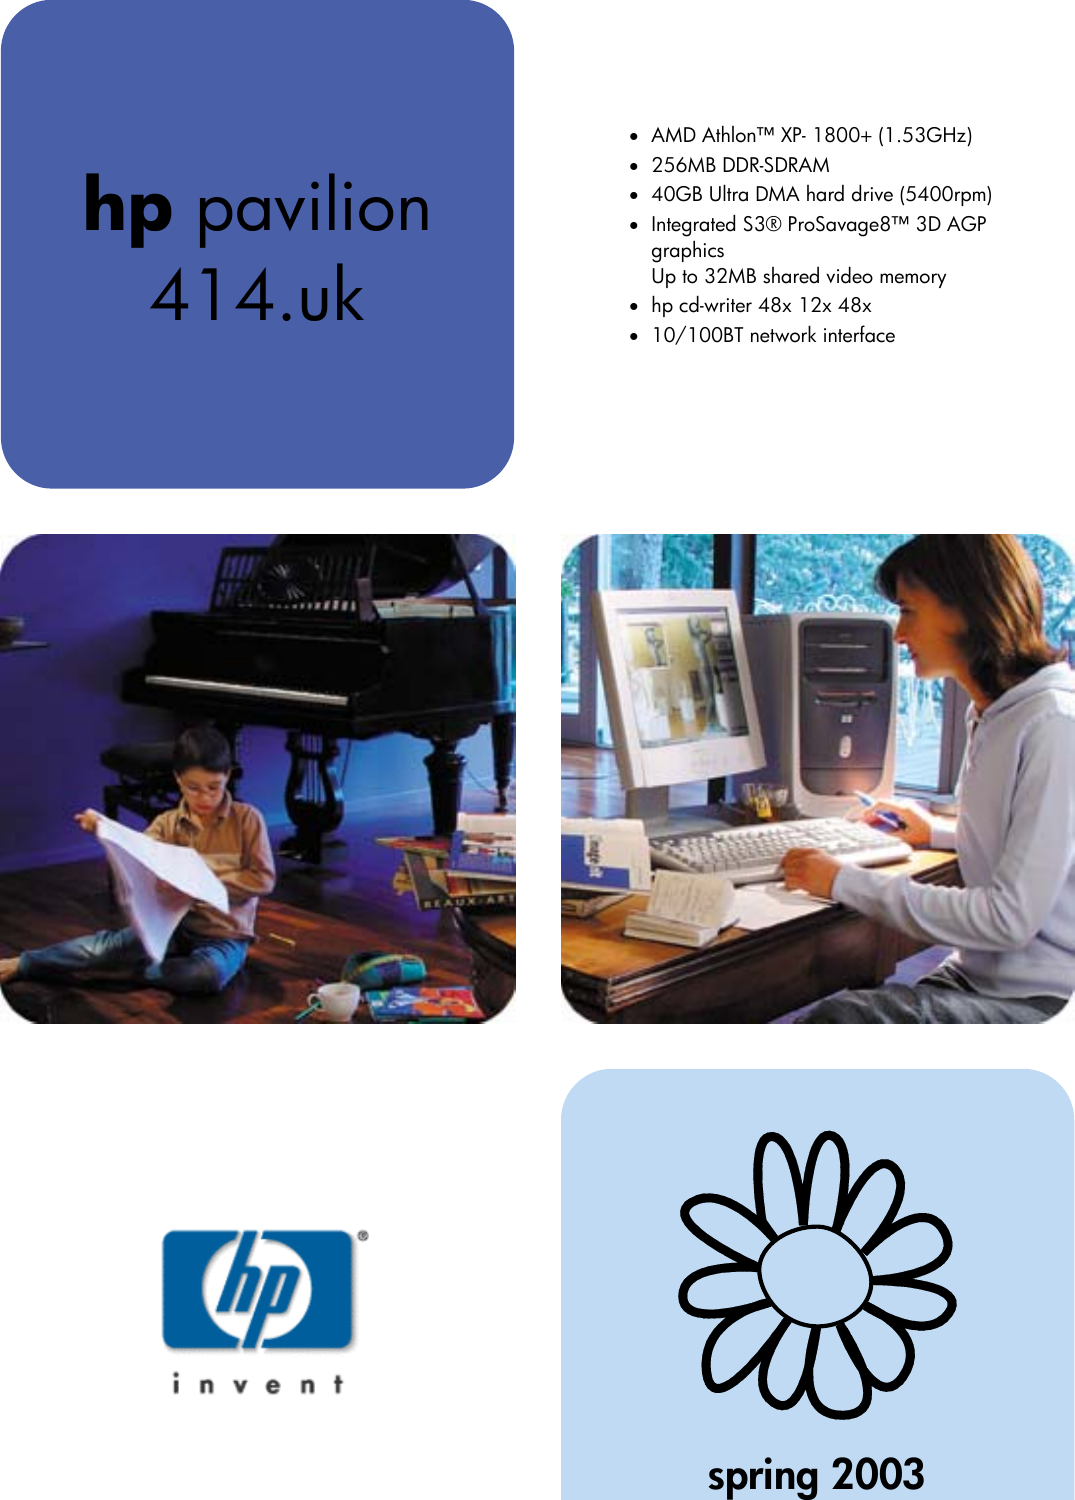 Hp Pavilion 414 Uk Users Manual 414 uk_ds_ene